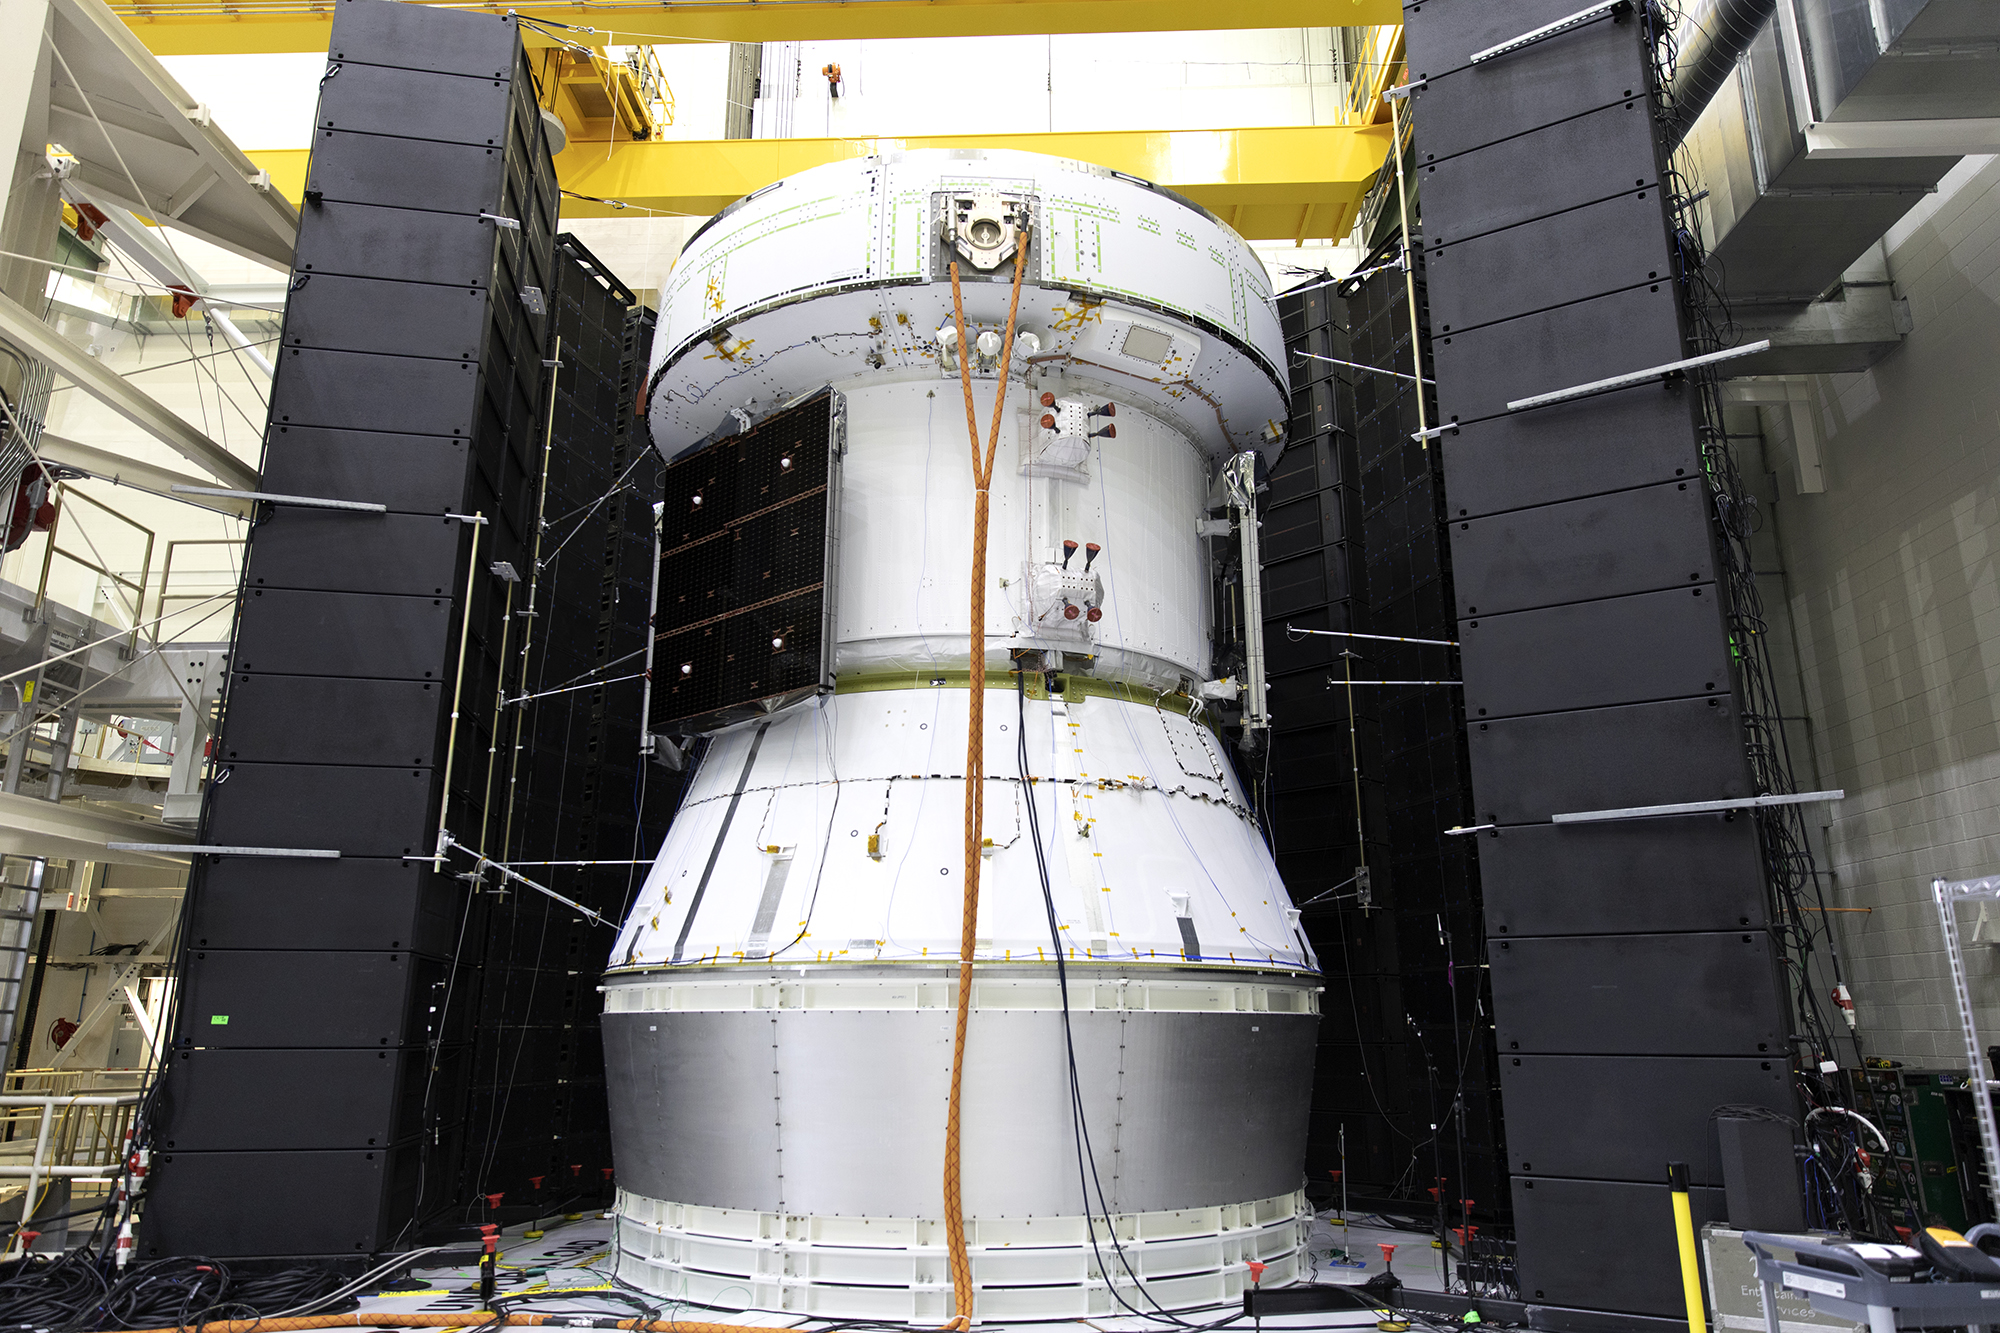 https://www.nasa.gov/sites/default/files/thumbnails/image/orion_service_module_acoustic_test_co.jpg